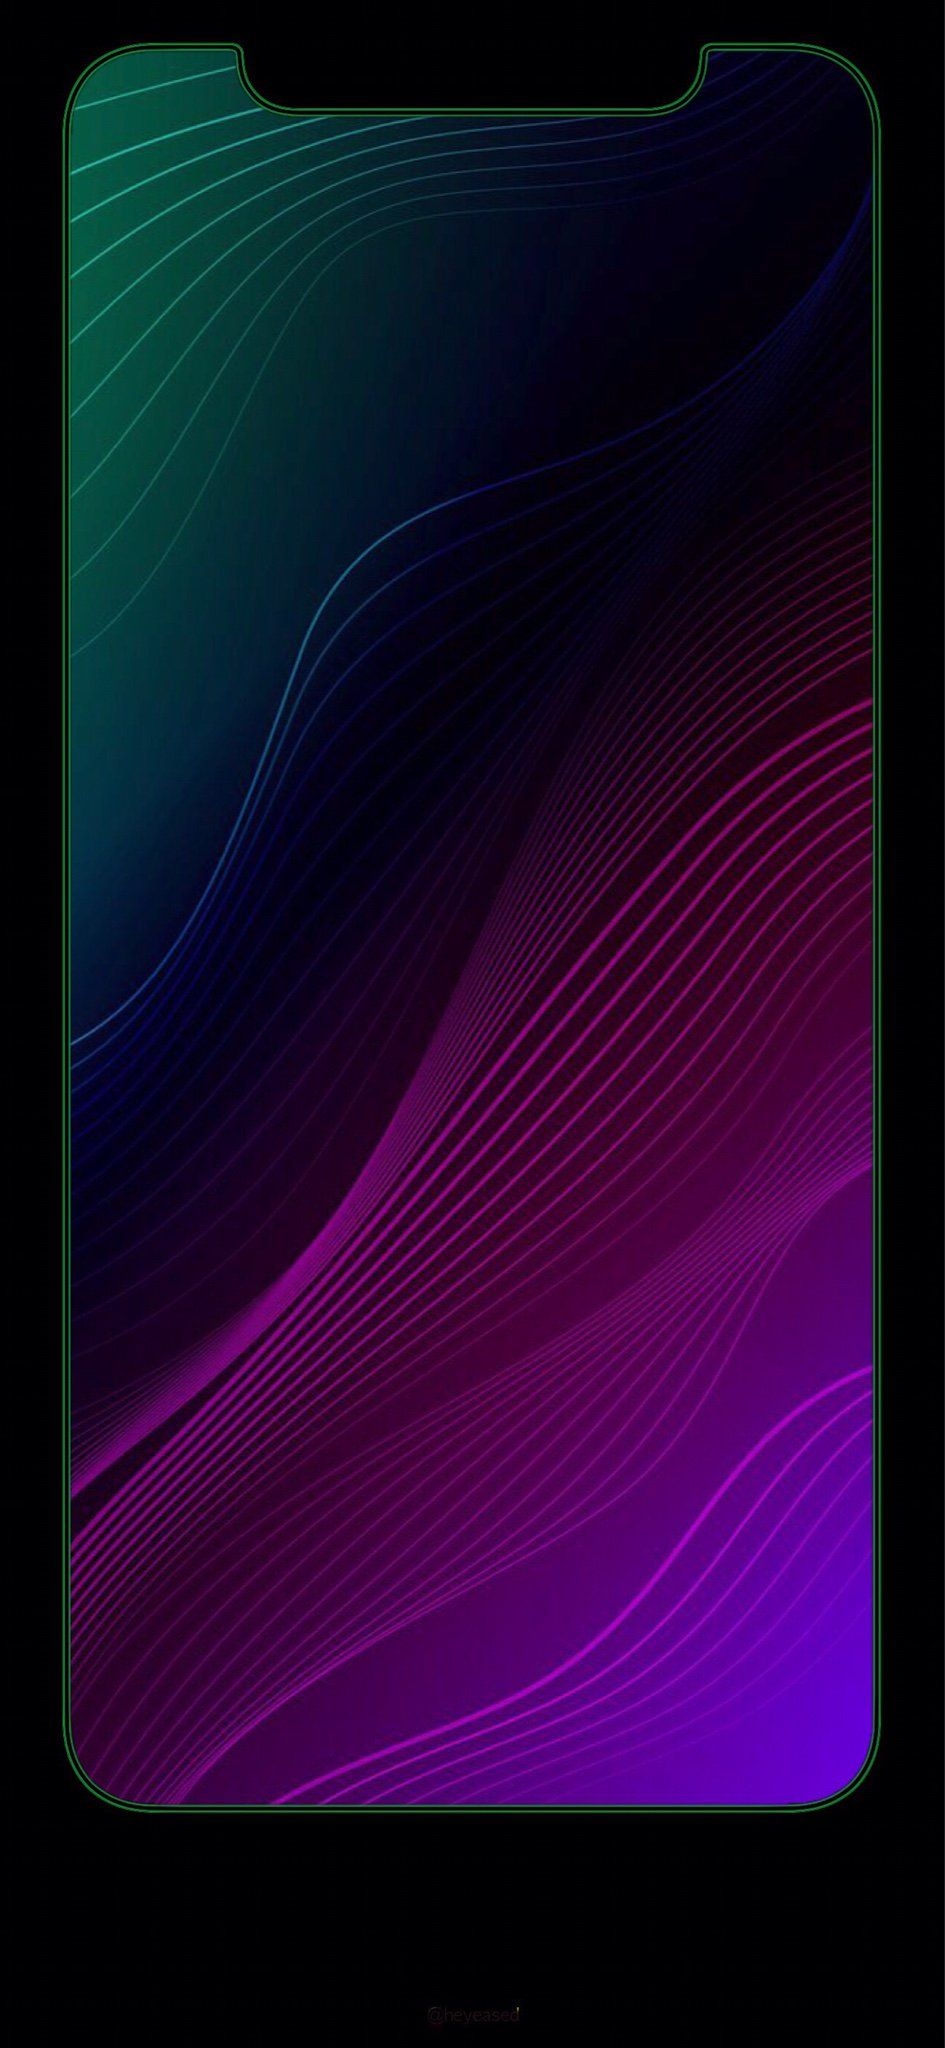 The iPhone X/Xs Wallpaper Thread Page 40 iPhone, iPad